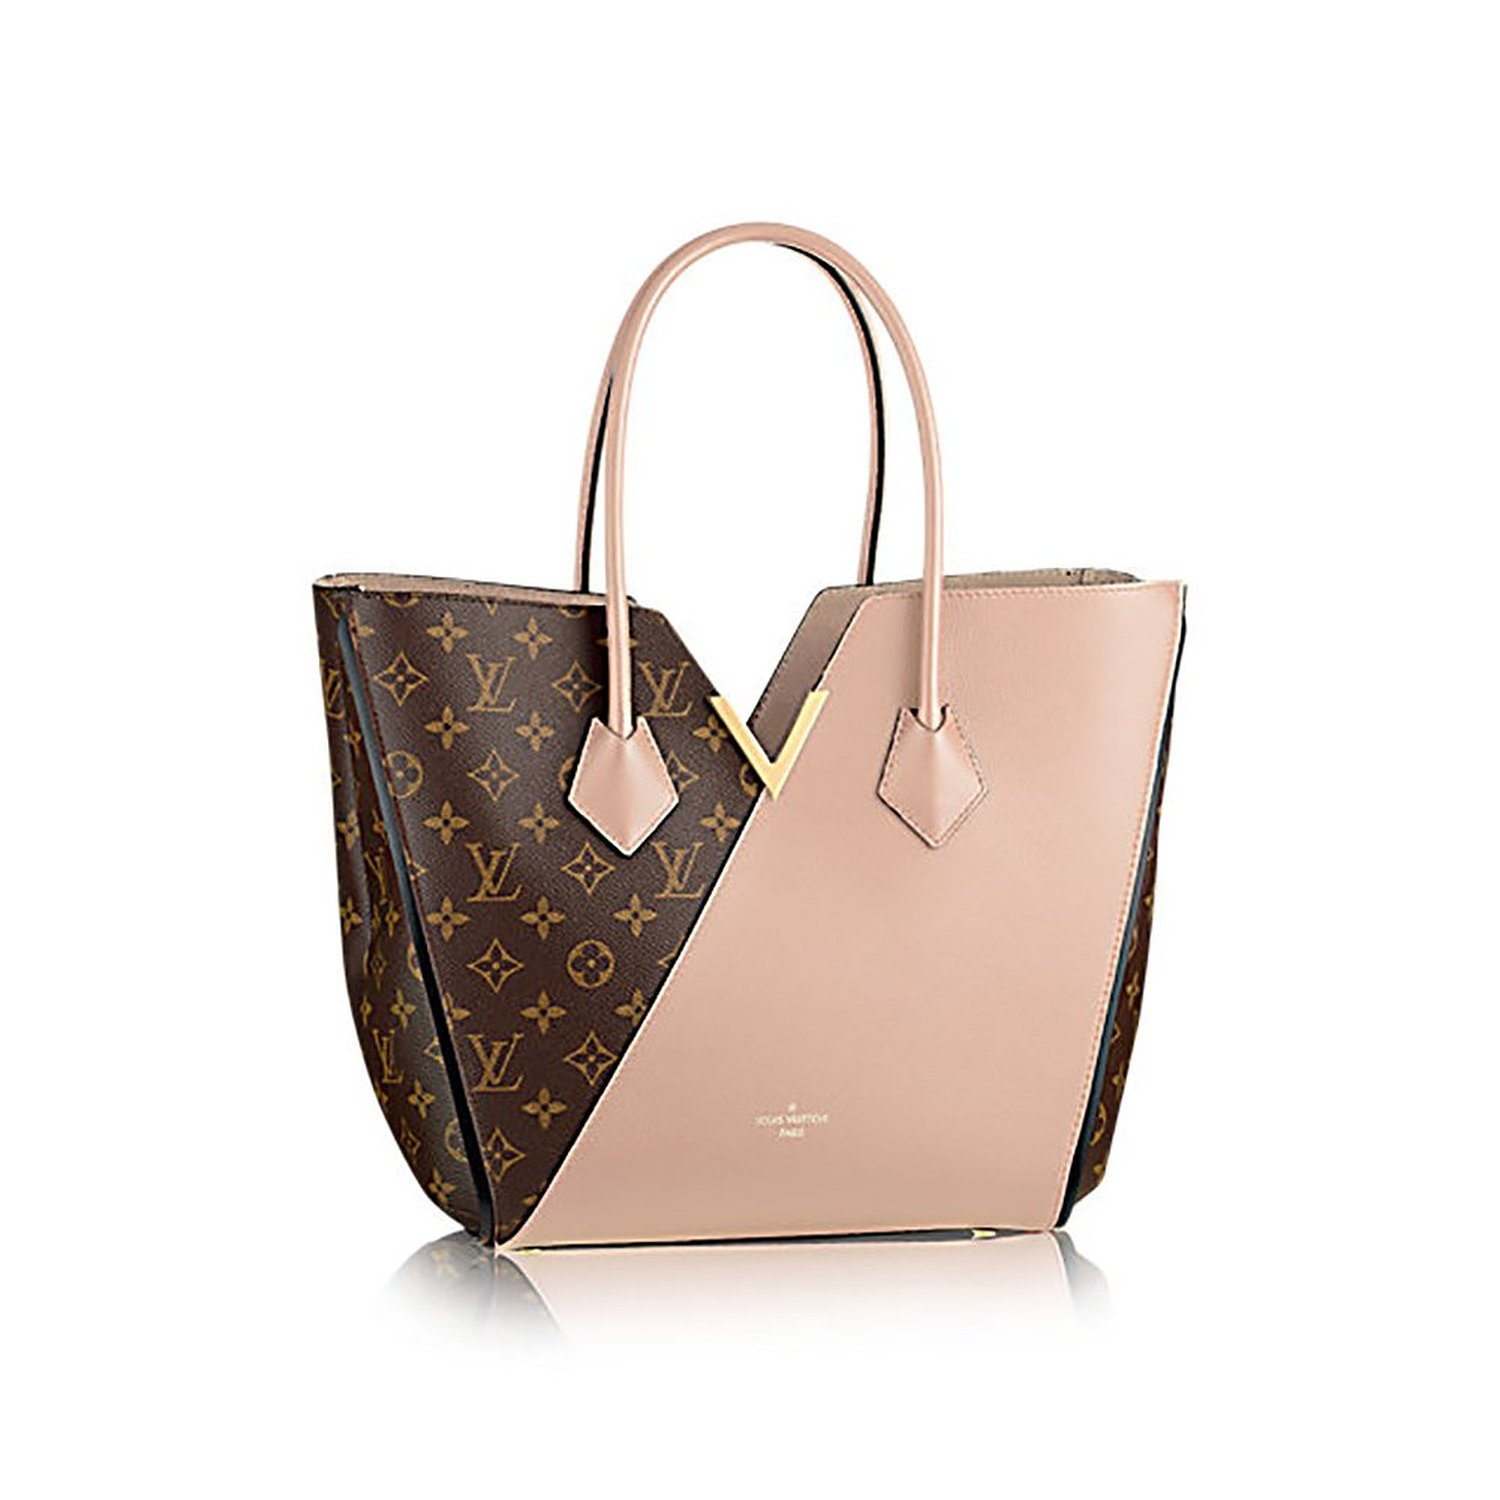 f124976c3 Authentic Louis Vuitton Kimono Tote Monogram Canvas Handbags ...